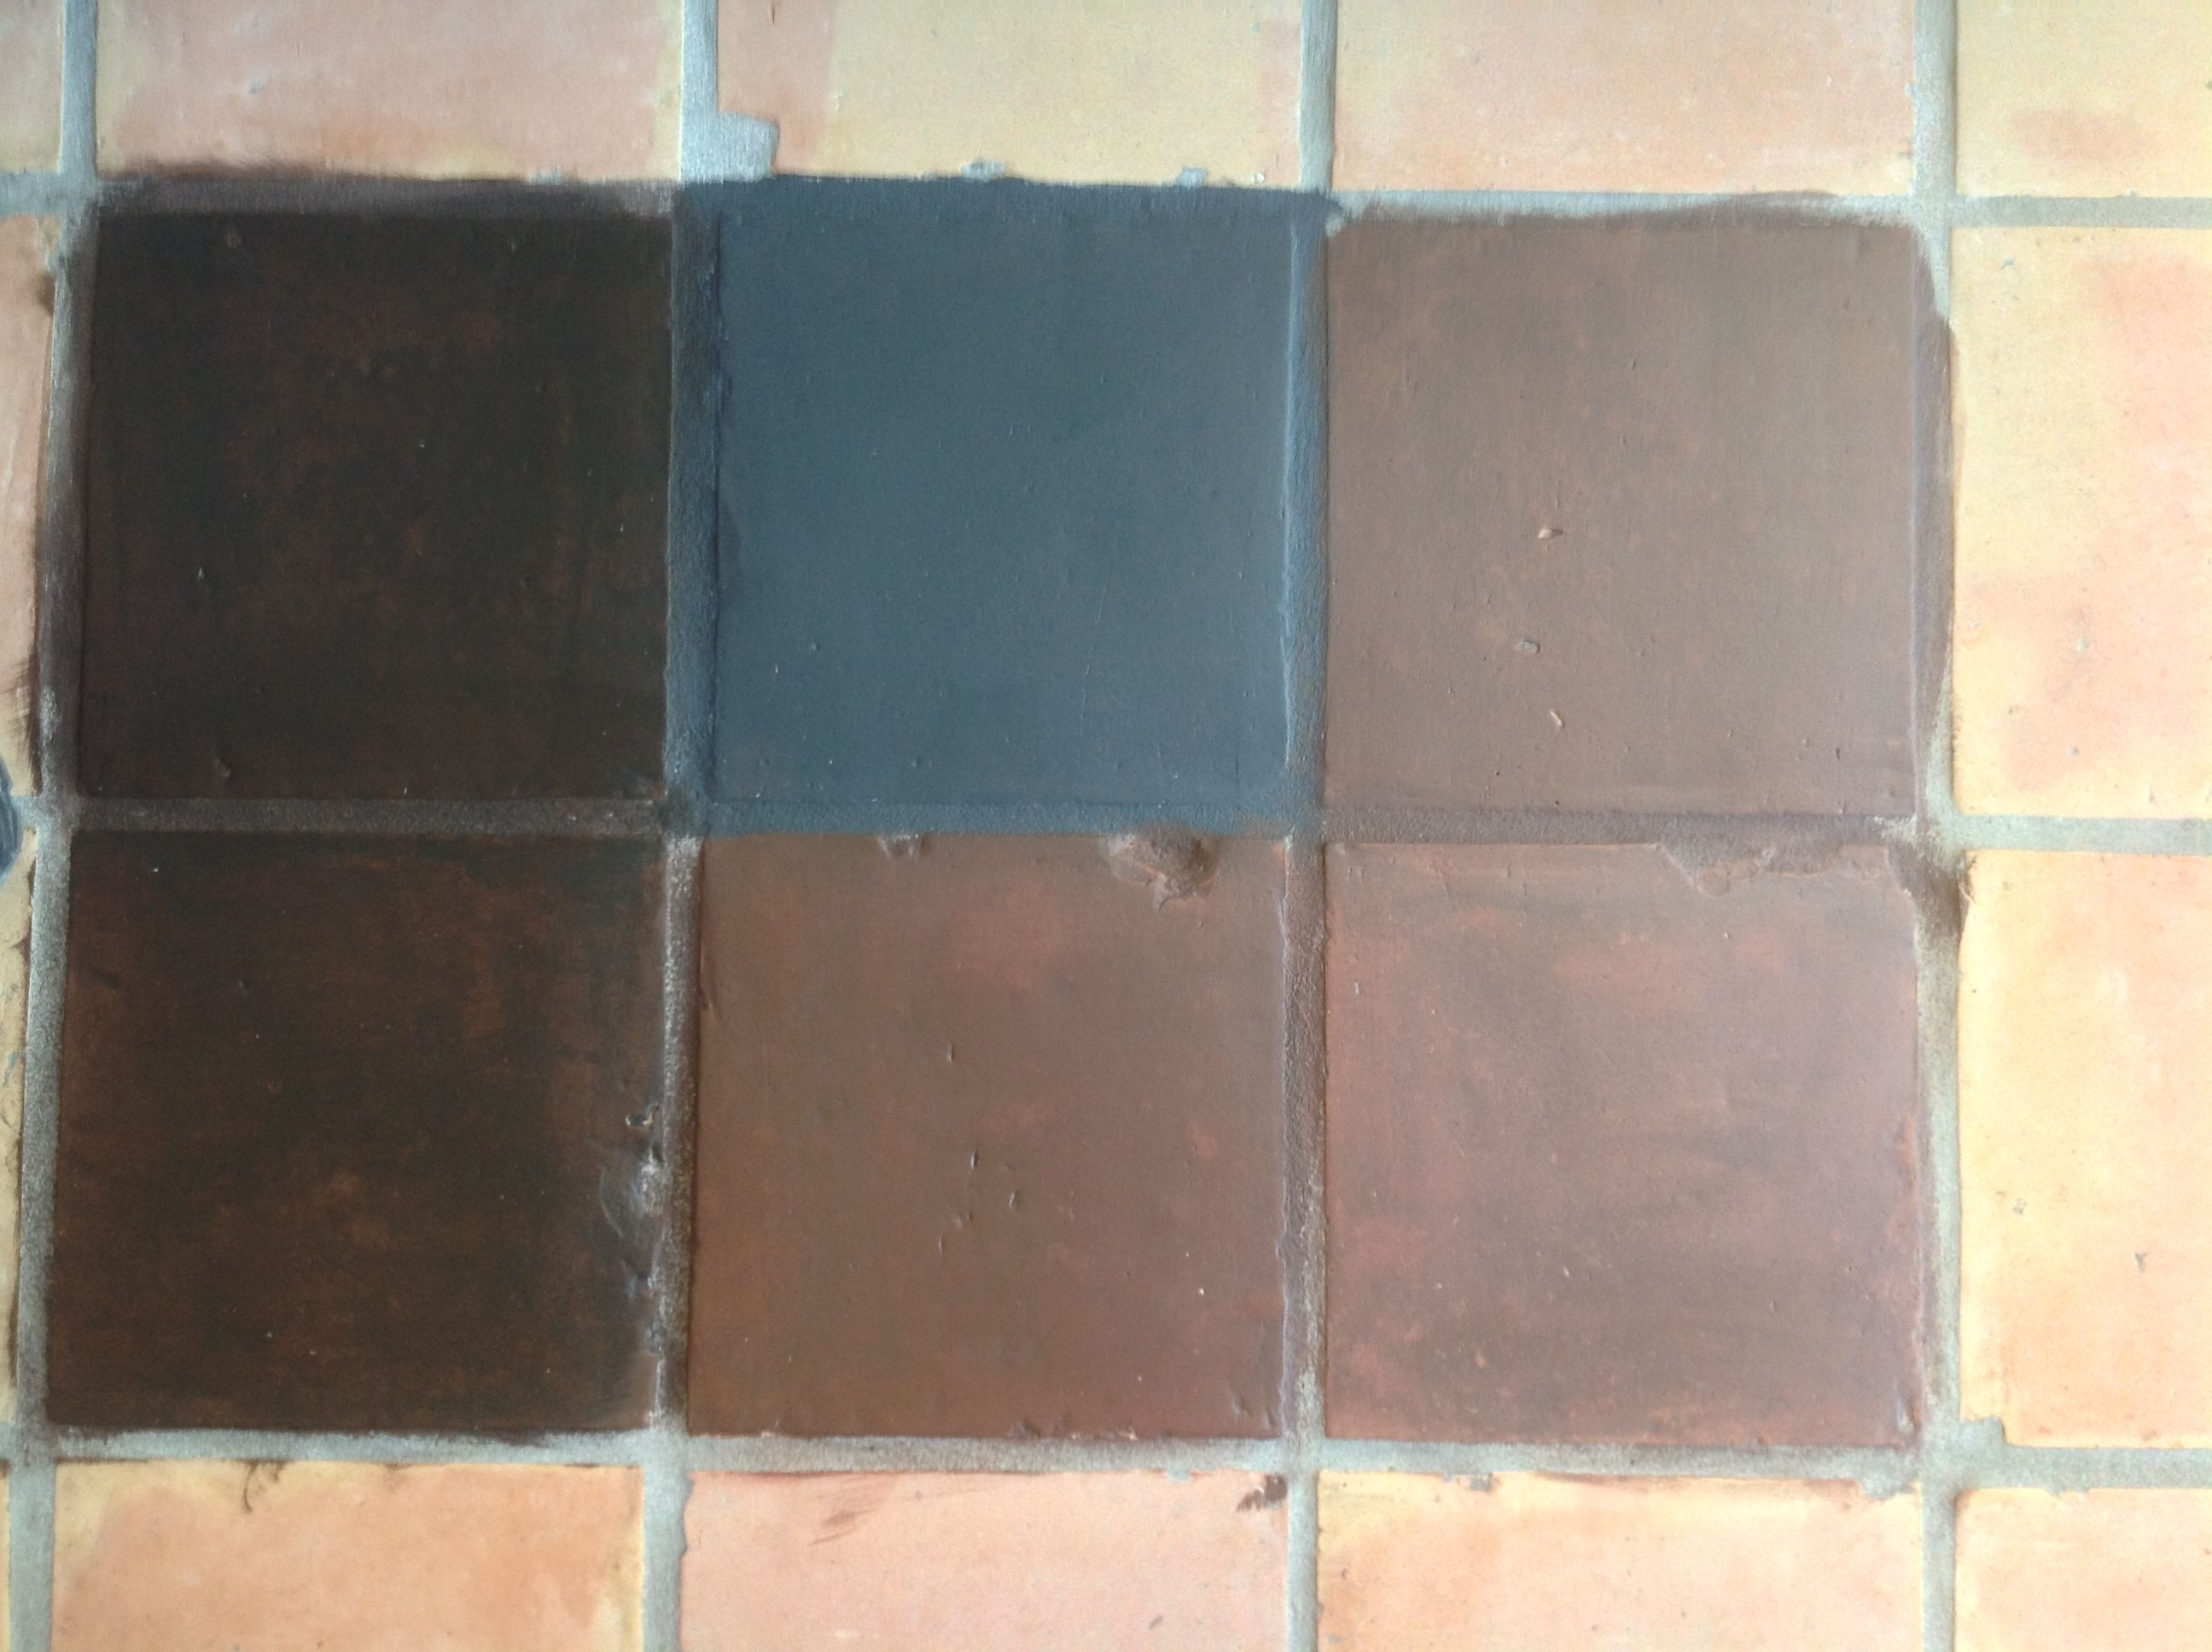 Best can i paint terracotta floor tiles images flooring area painting terracotta floor tiles images tile flooring design ideas doublecrazyfo Image collections